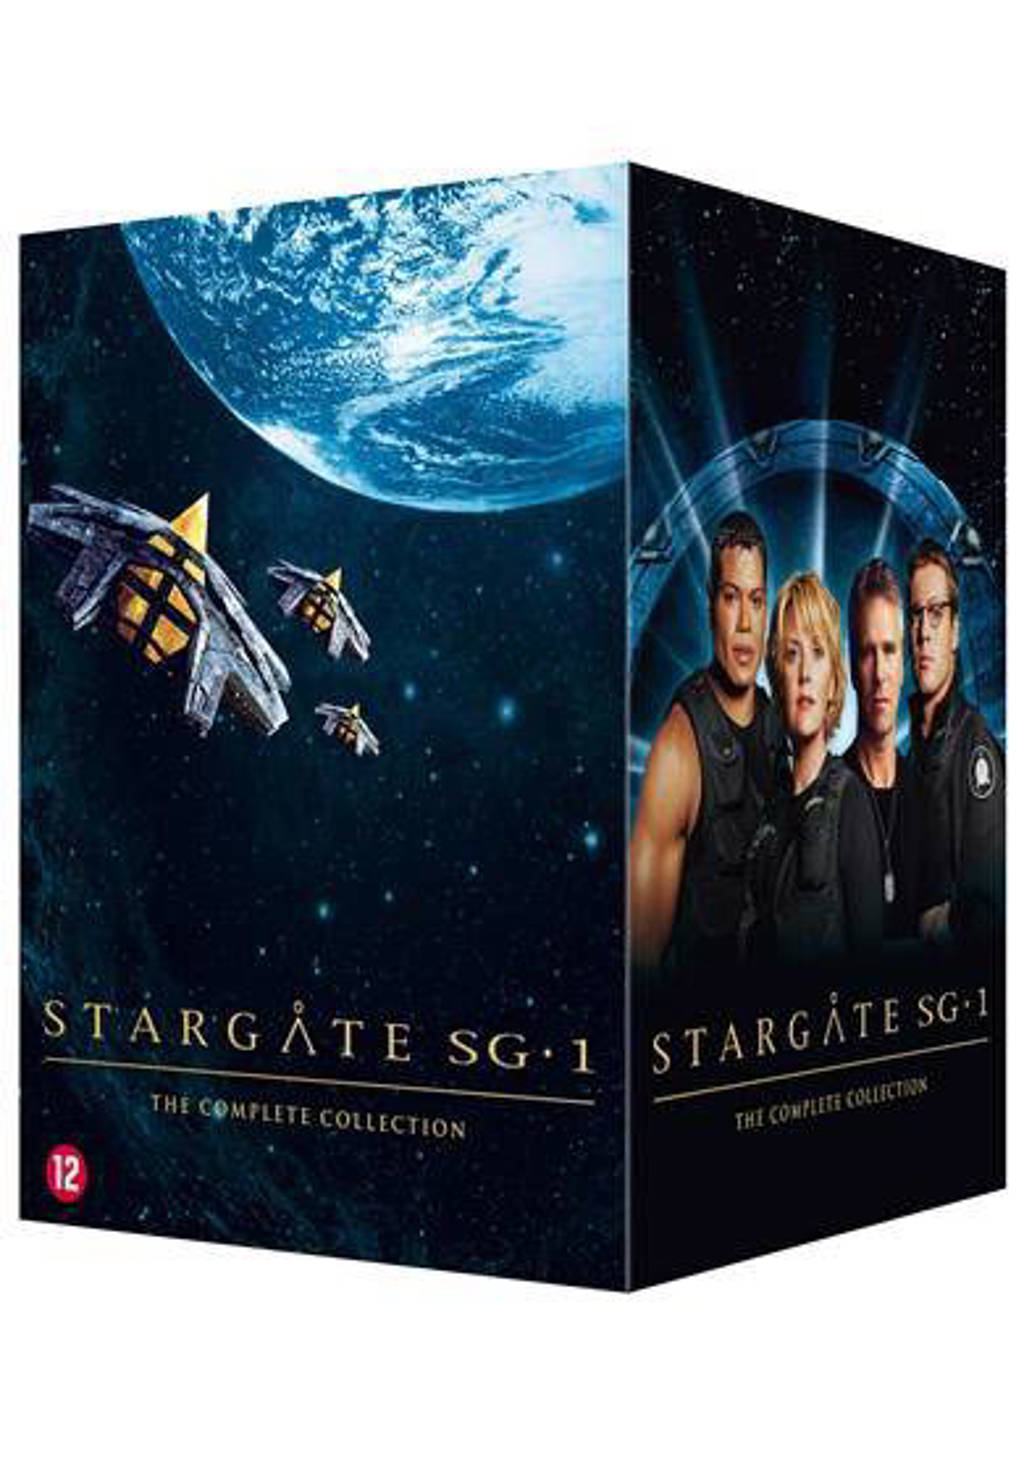 Stargate SG1 - Complete collection (DVD)